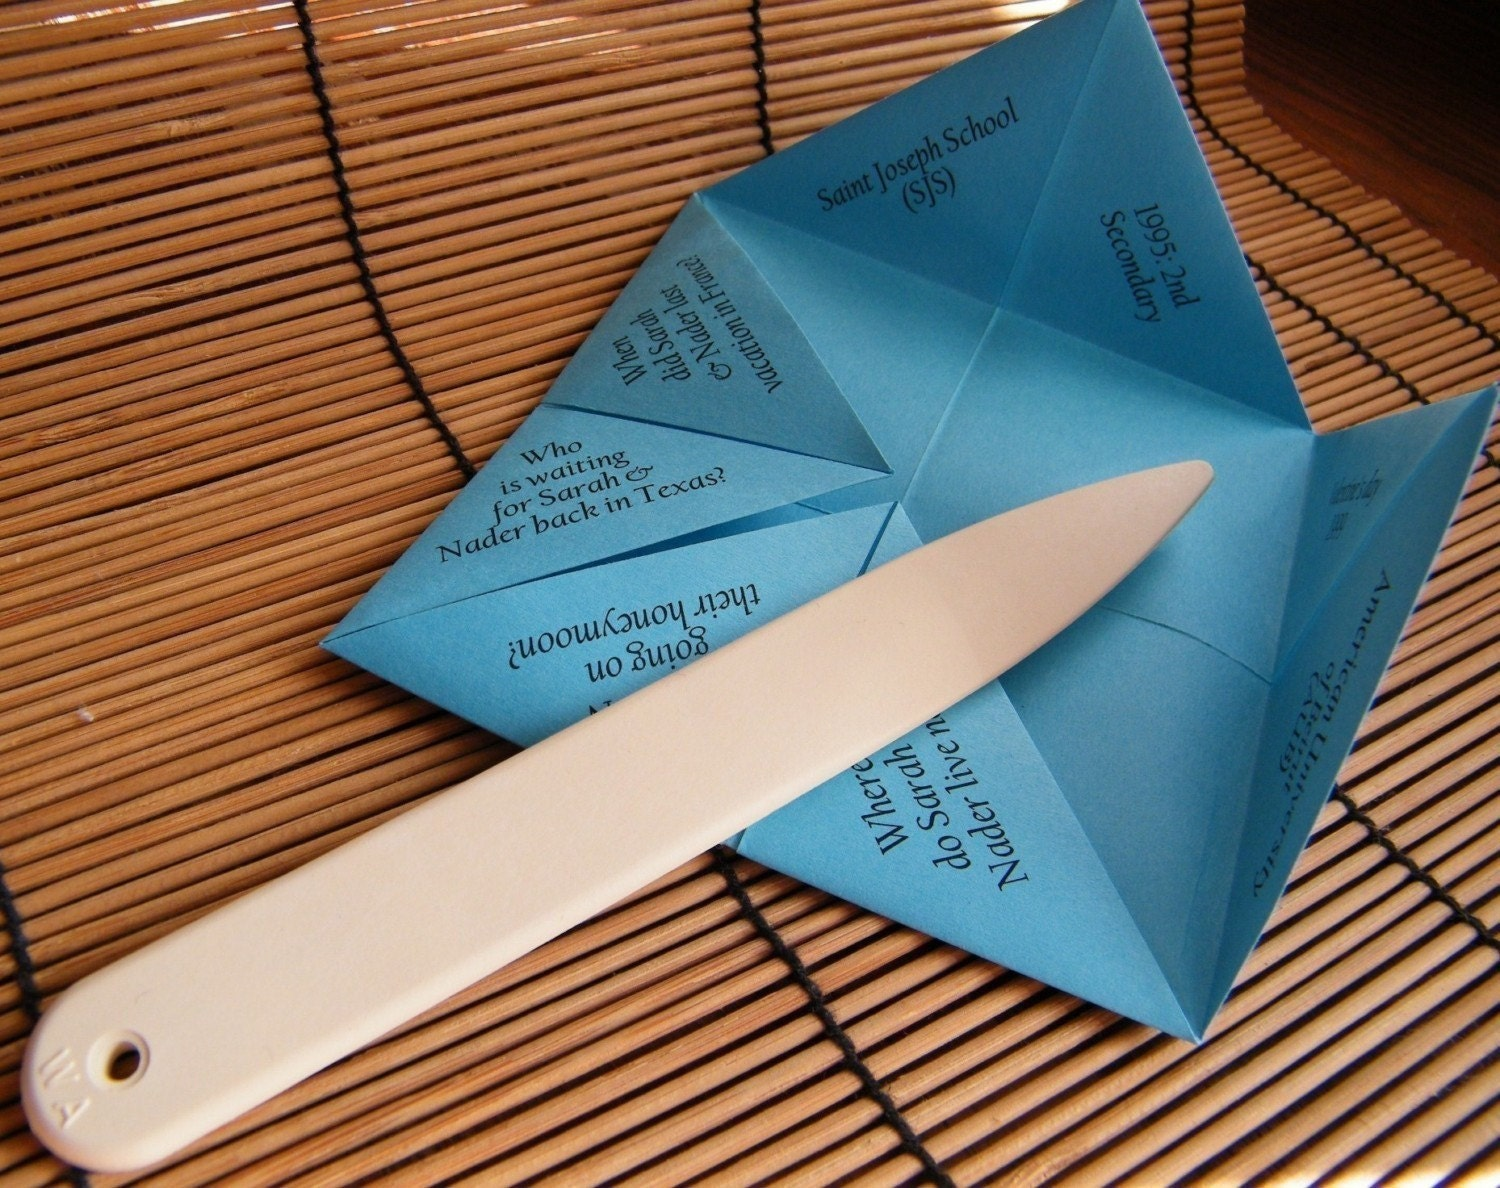 folding tool for origami and paper crafts